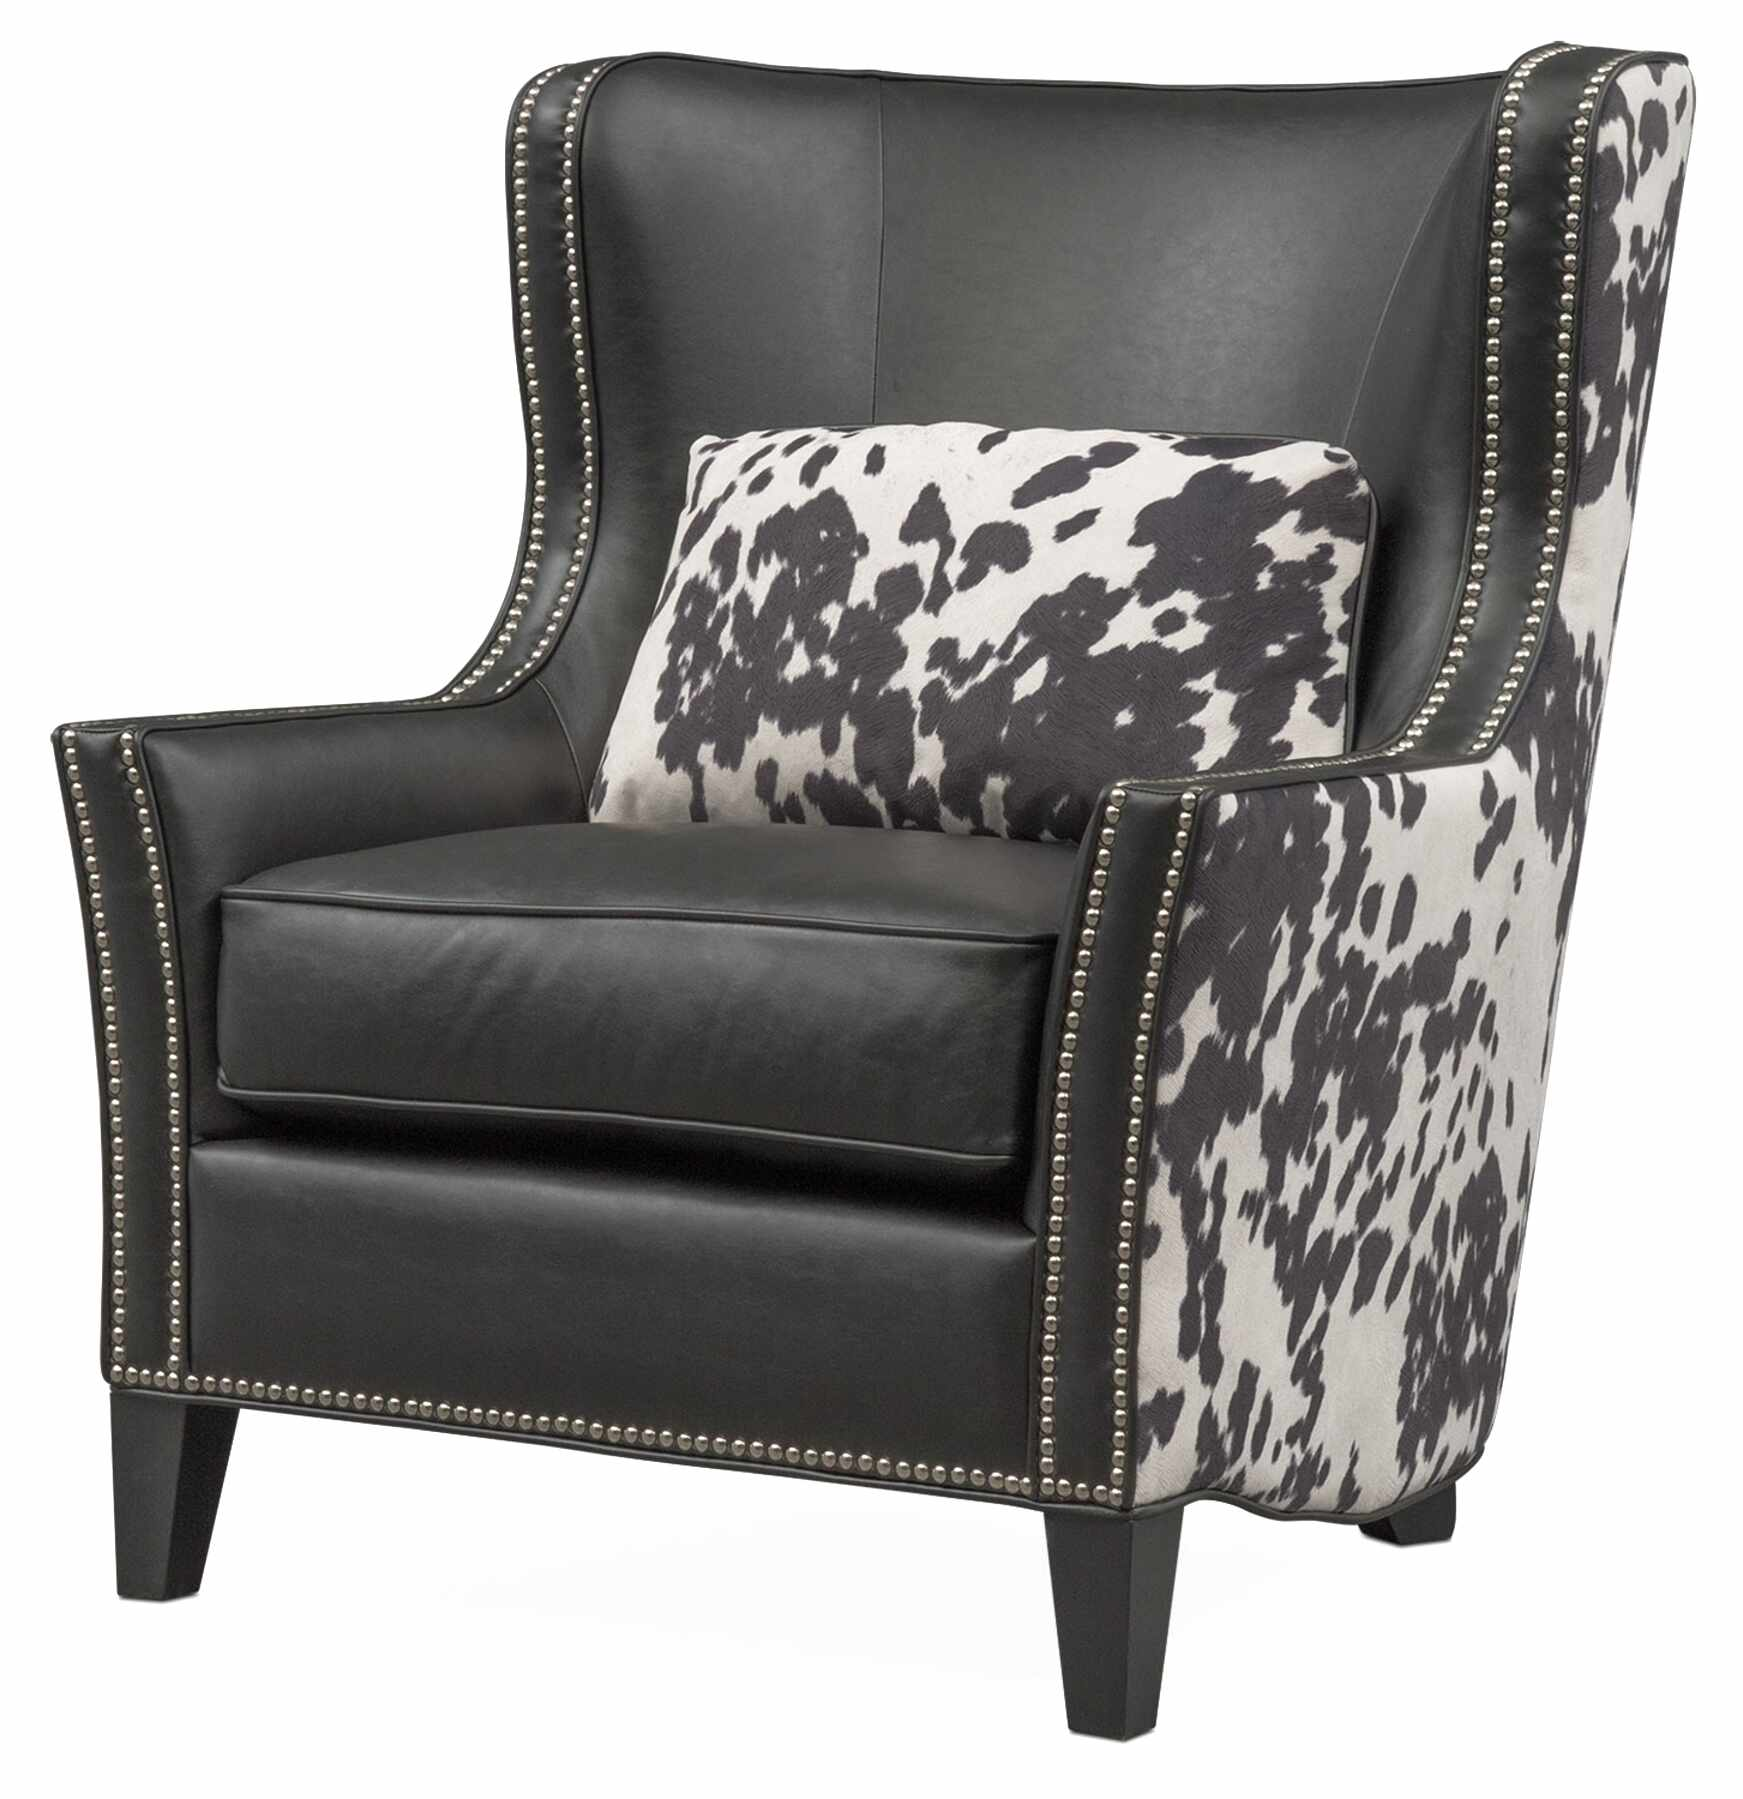 cowhide chair for sale